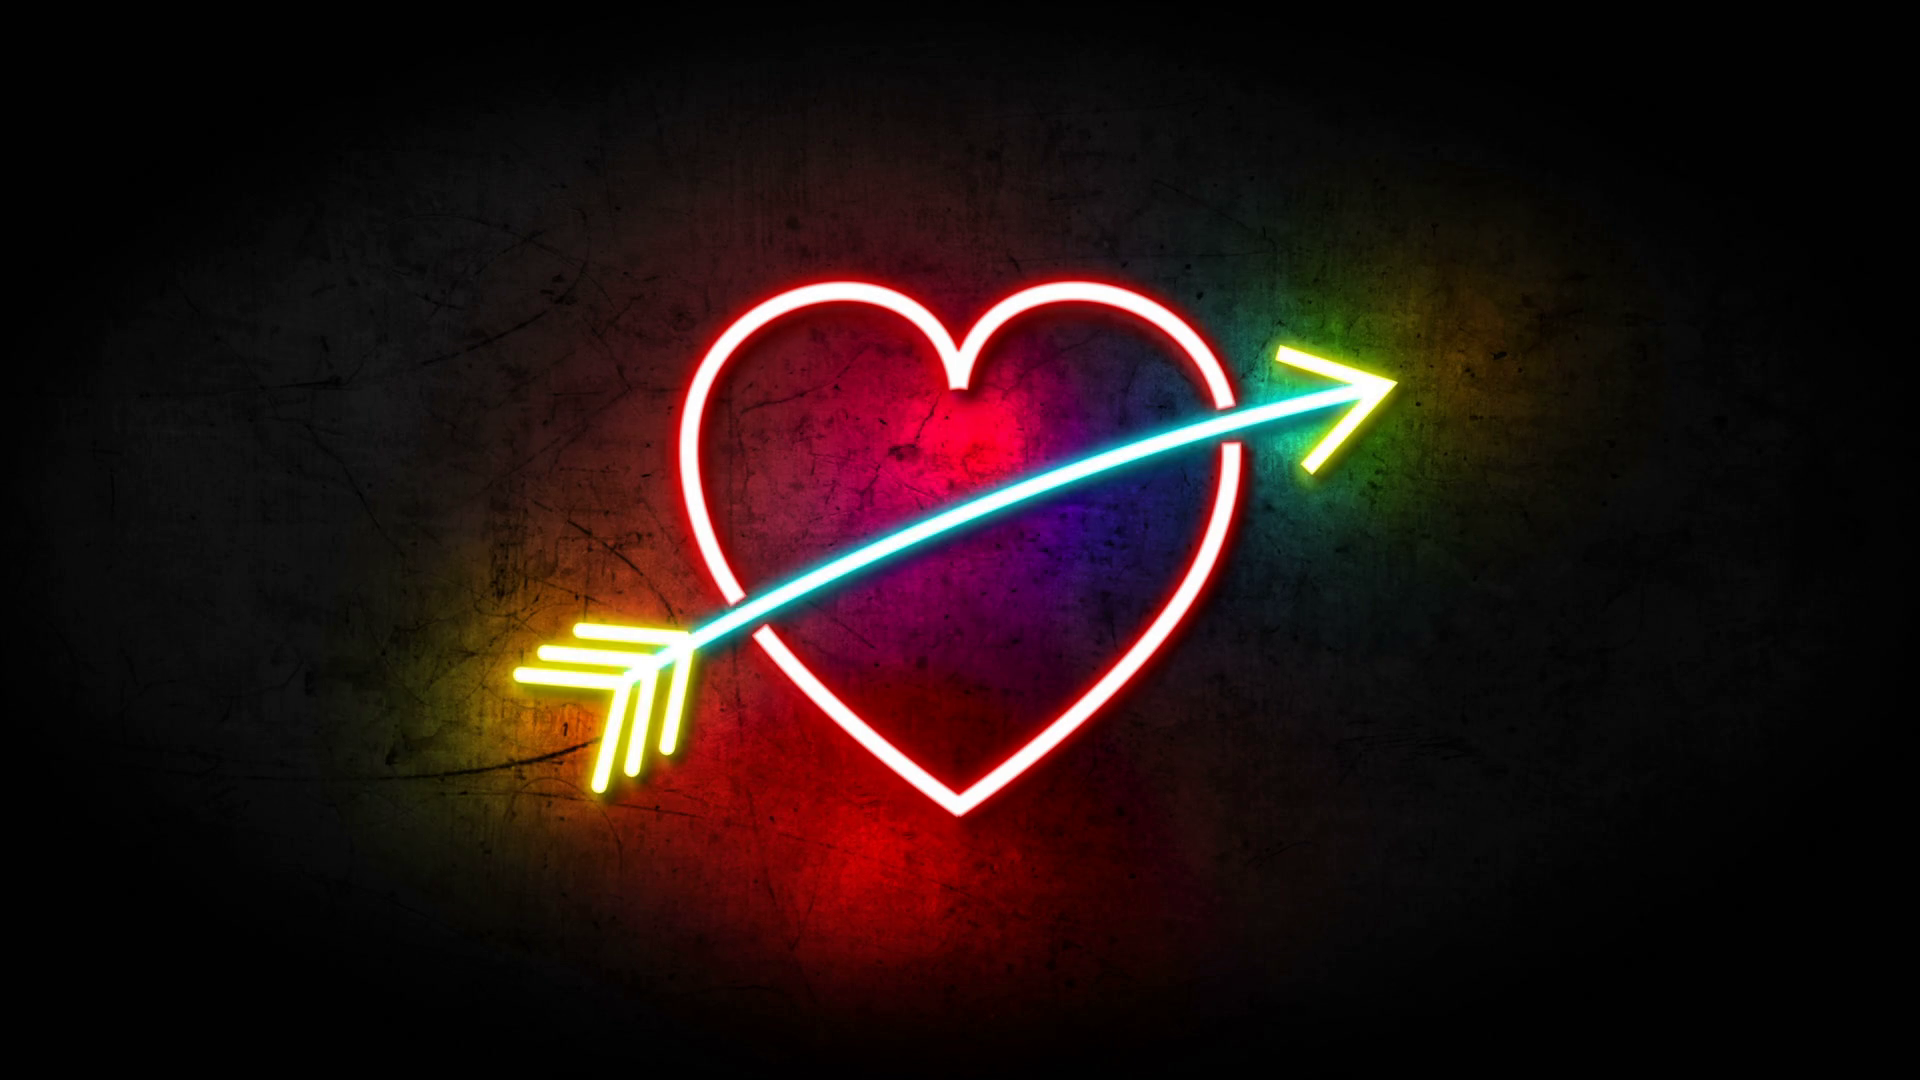 Pin By Mafe On Neon Quotes Heart With Arrow Love Neon Sign Valentines Day Background